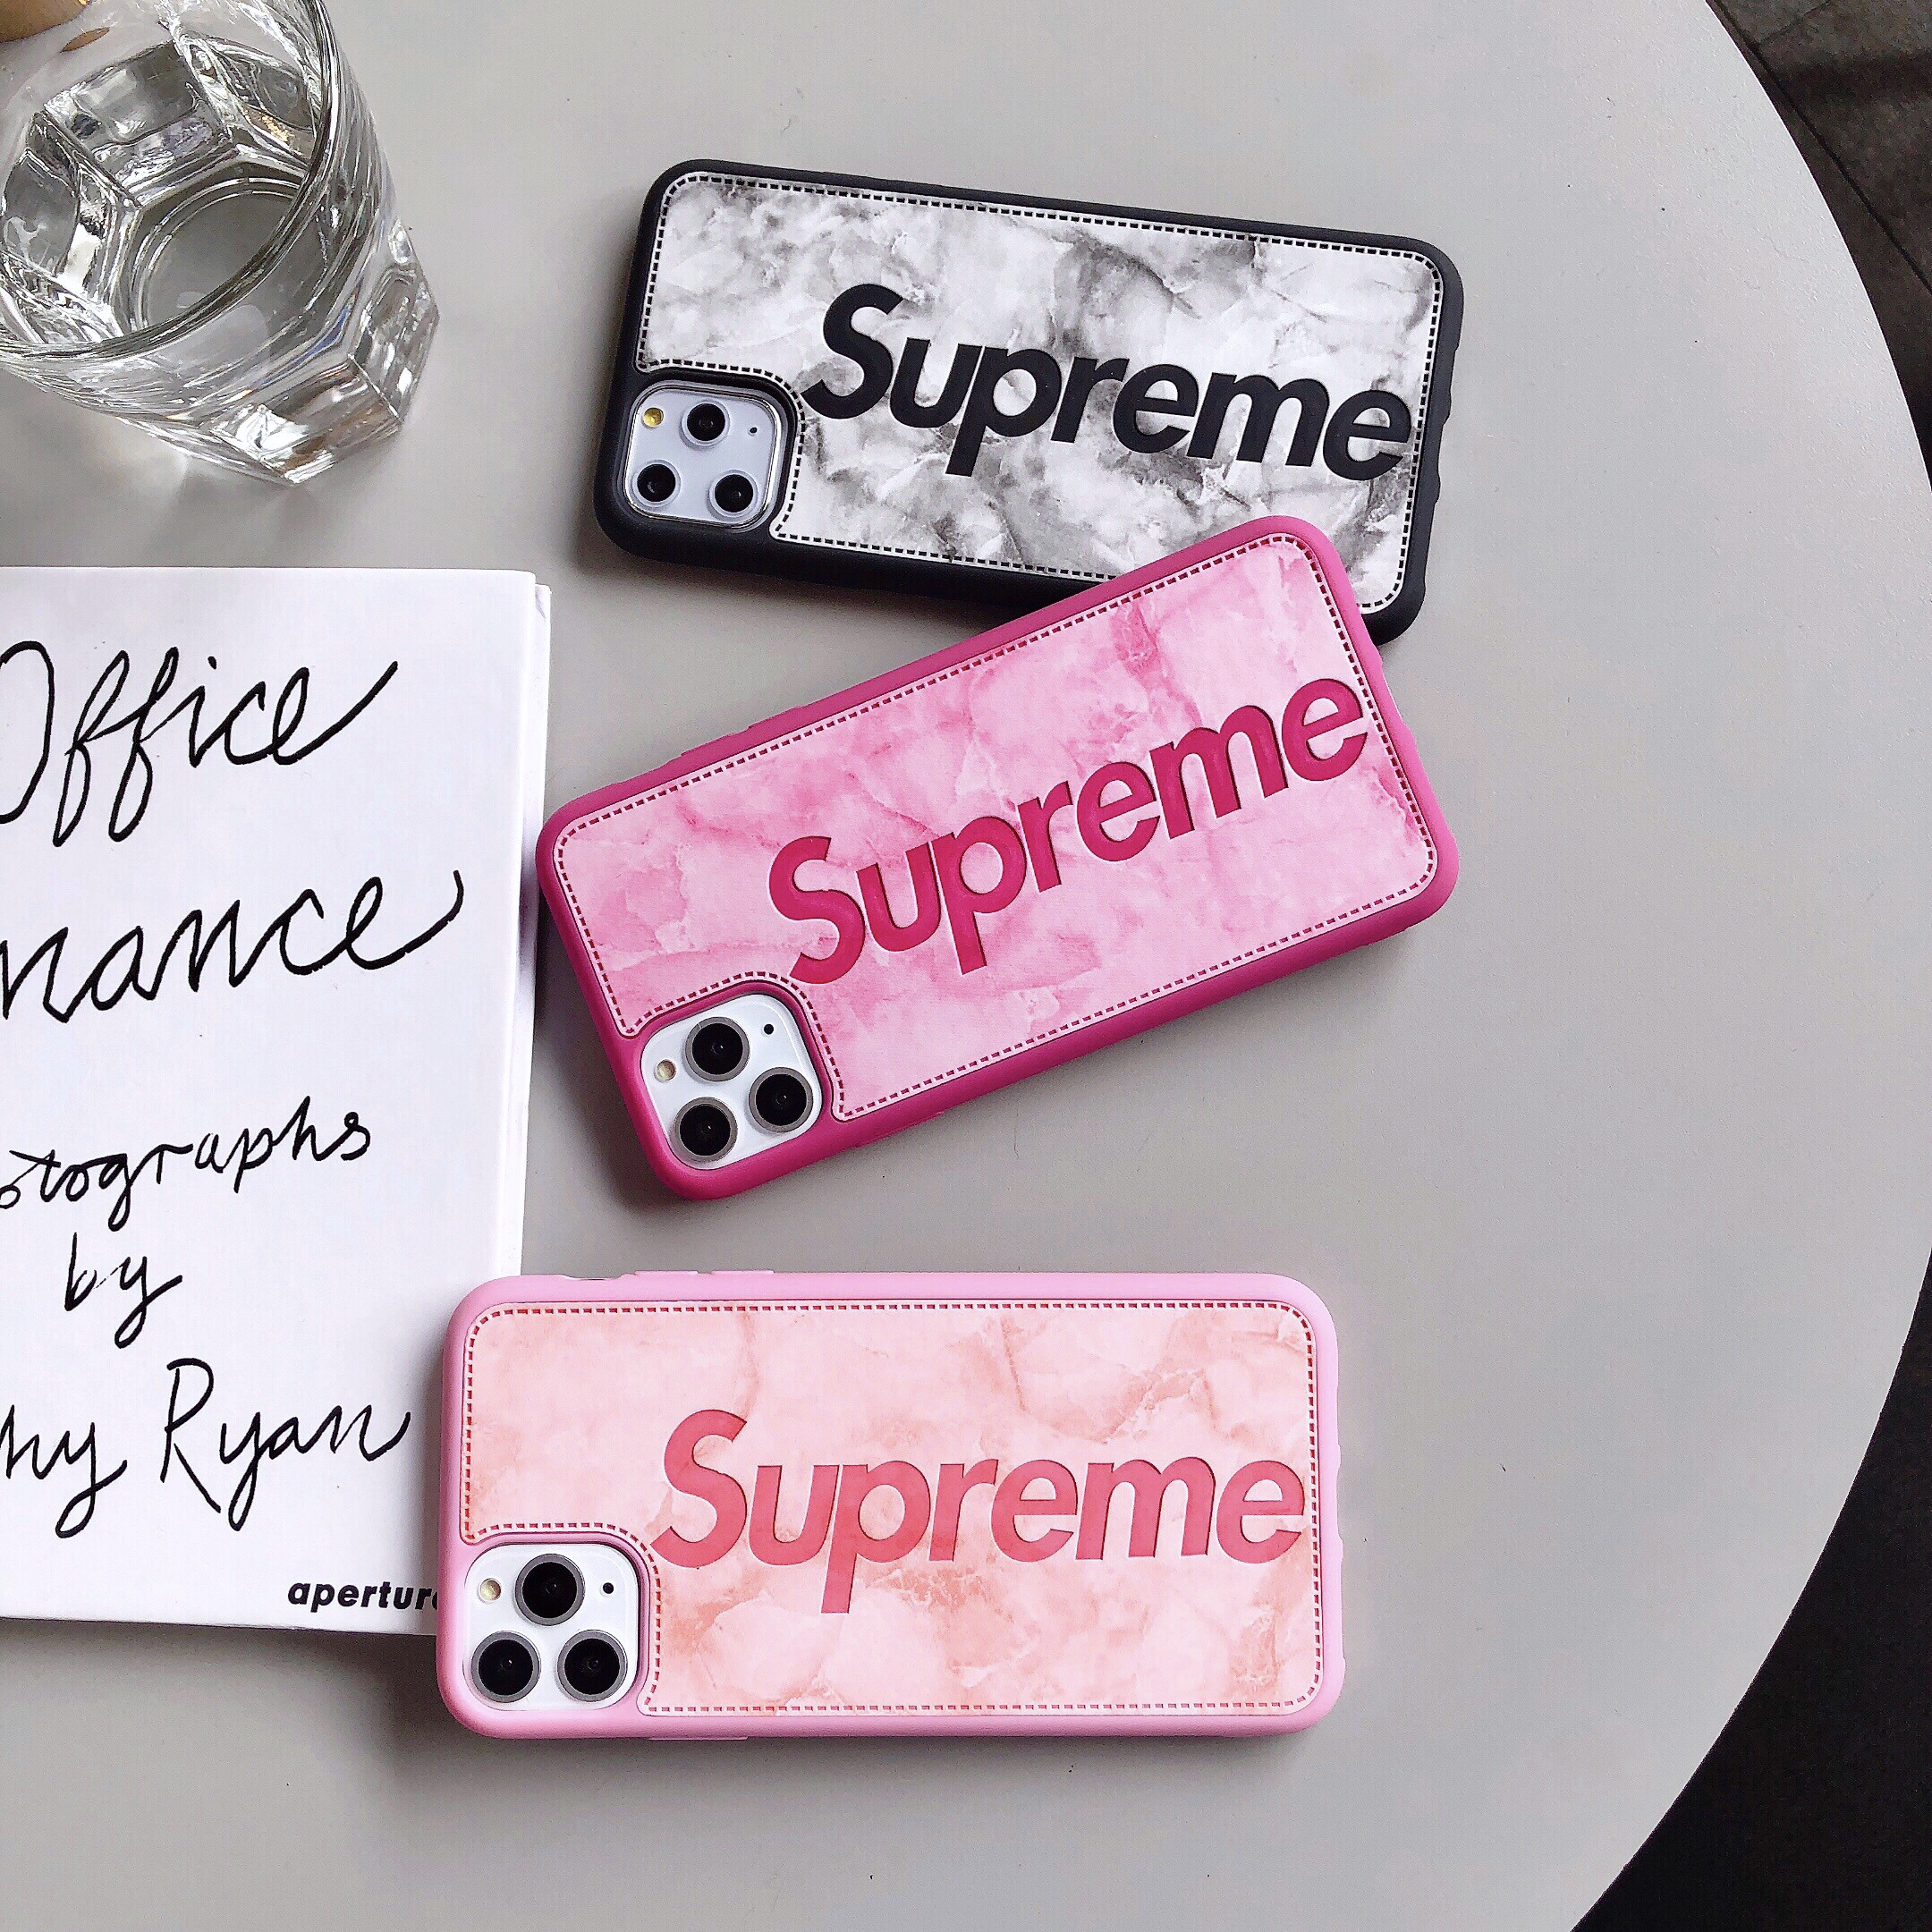 Supreme(シュプリーム) iPhone6/6s、6/6sPlus、7、7 Plus、8、8 Plus、X 、XS、XS Max、XR、11、iPhone 11 Pro、11 Pro Max ケース 3色